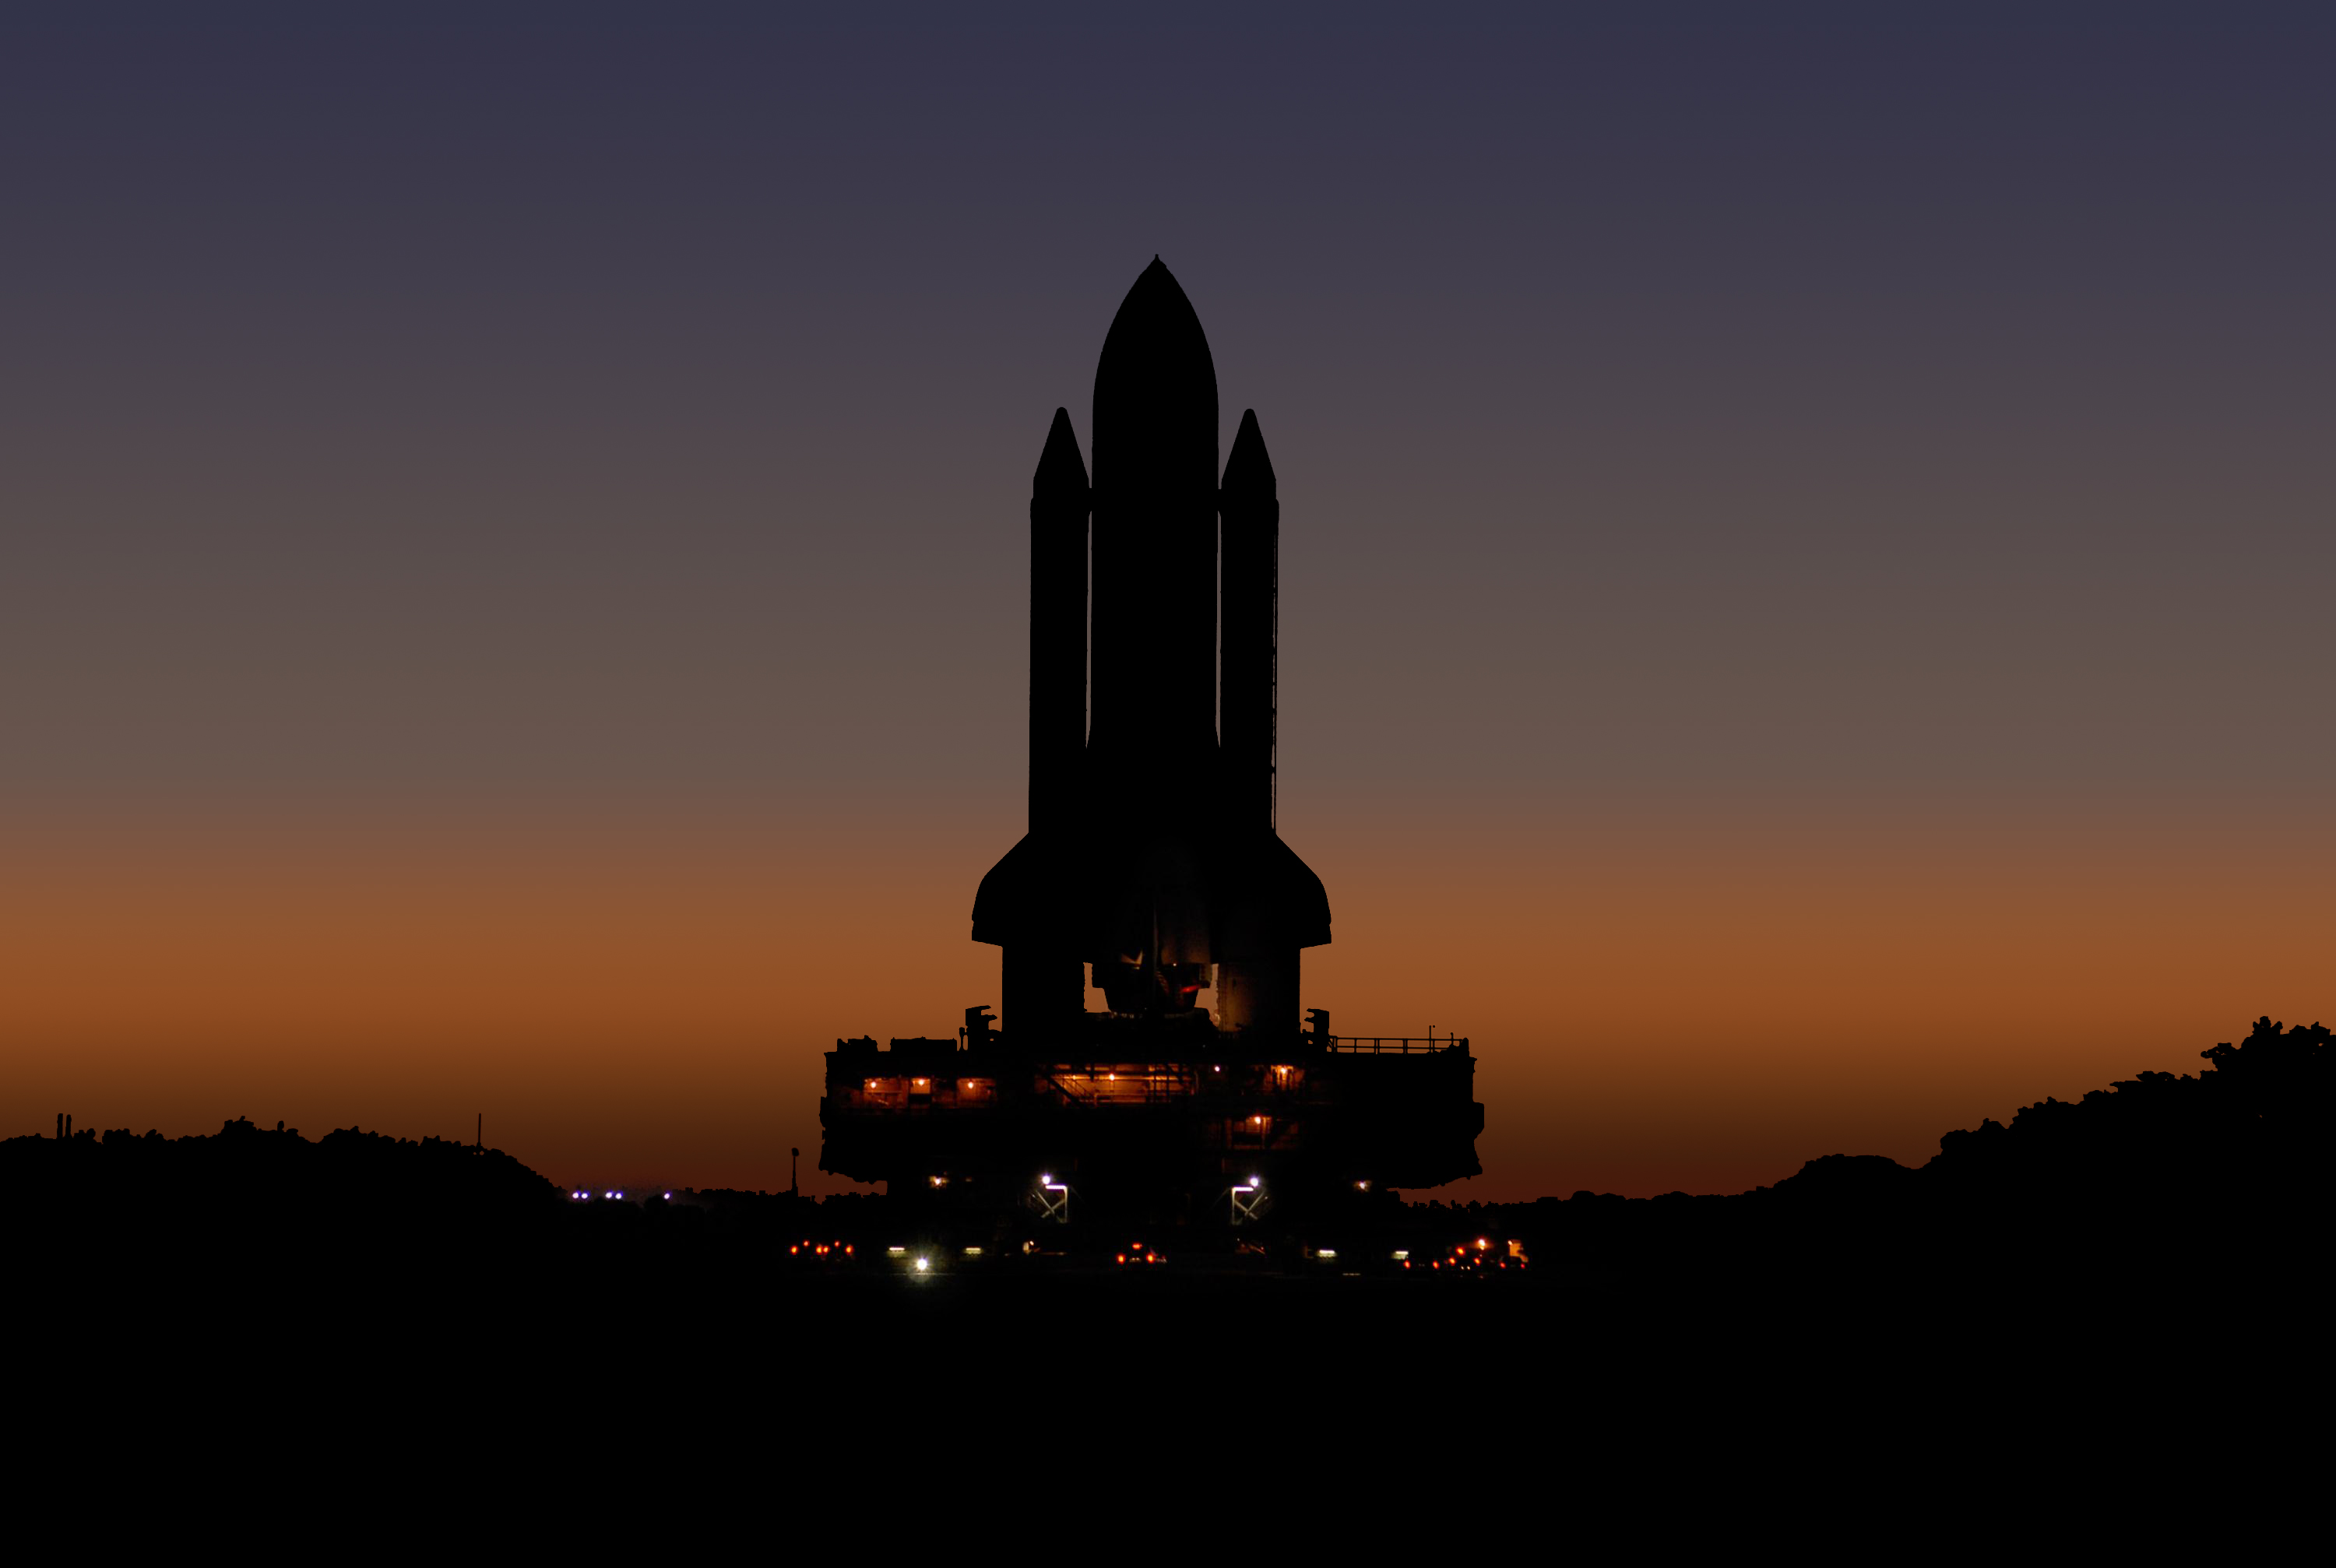 Space Shuttle Wallpaper 3000x2014 Space Shuttle 3000x2014